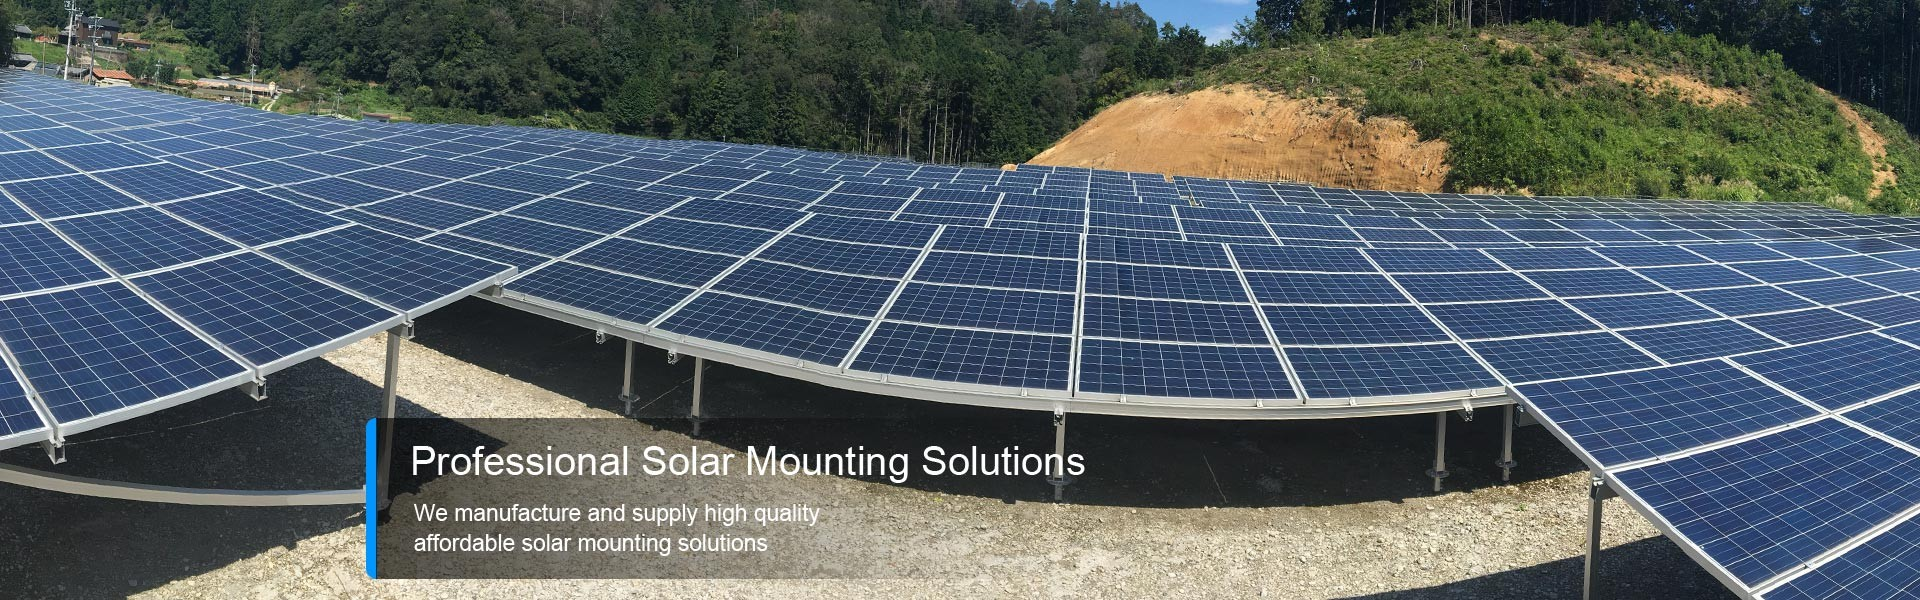 professional Solar Mounting Solutions